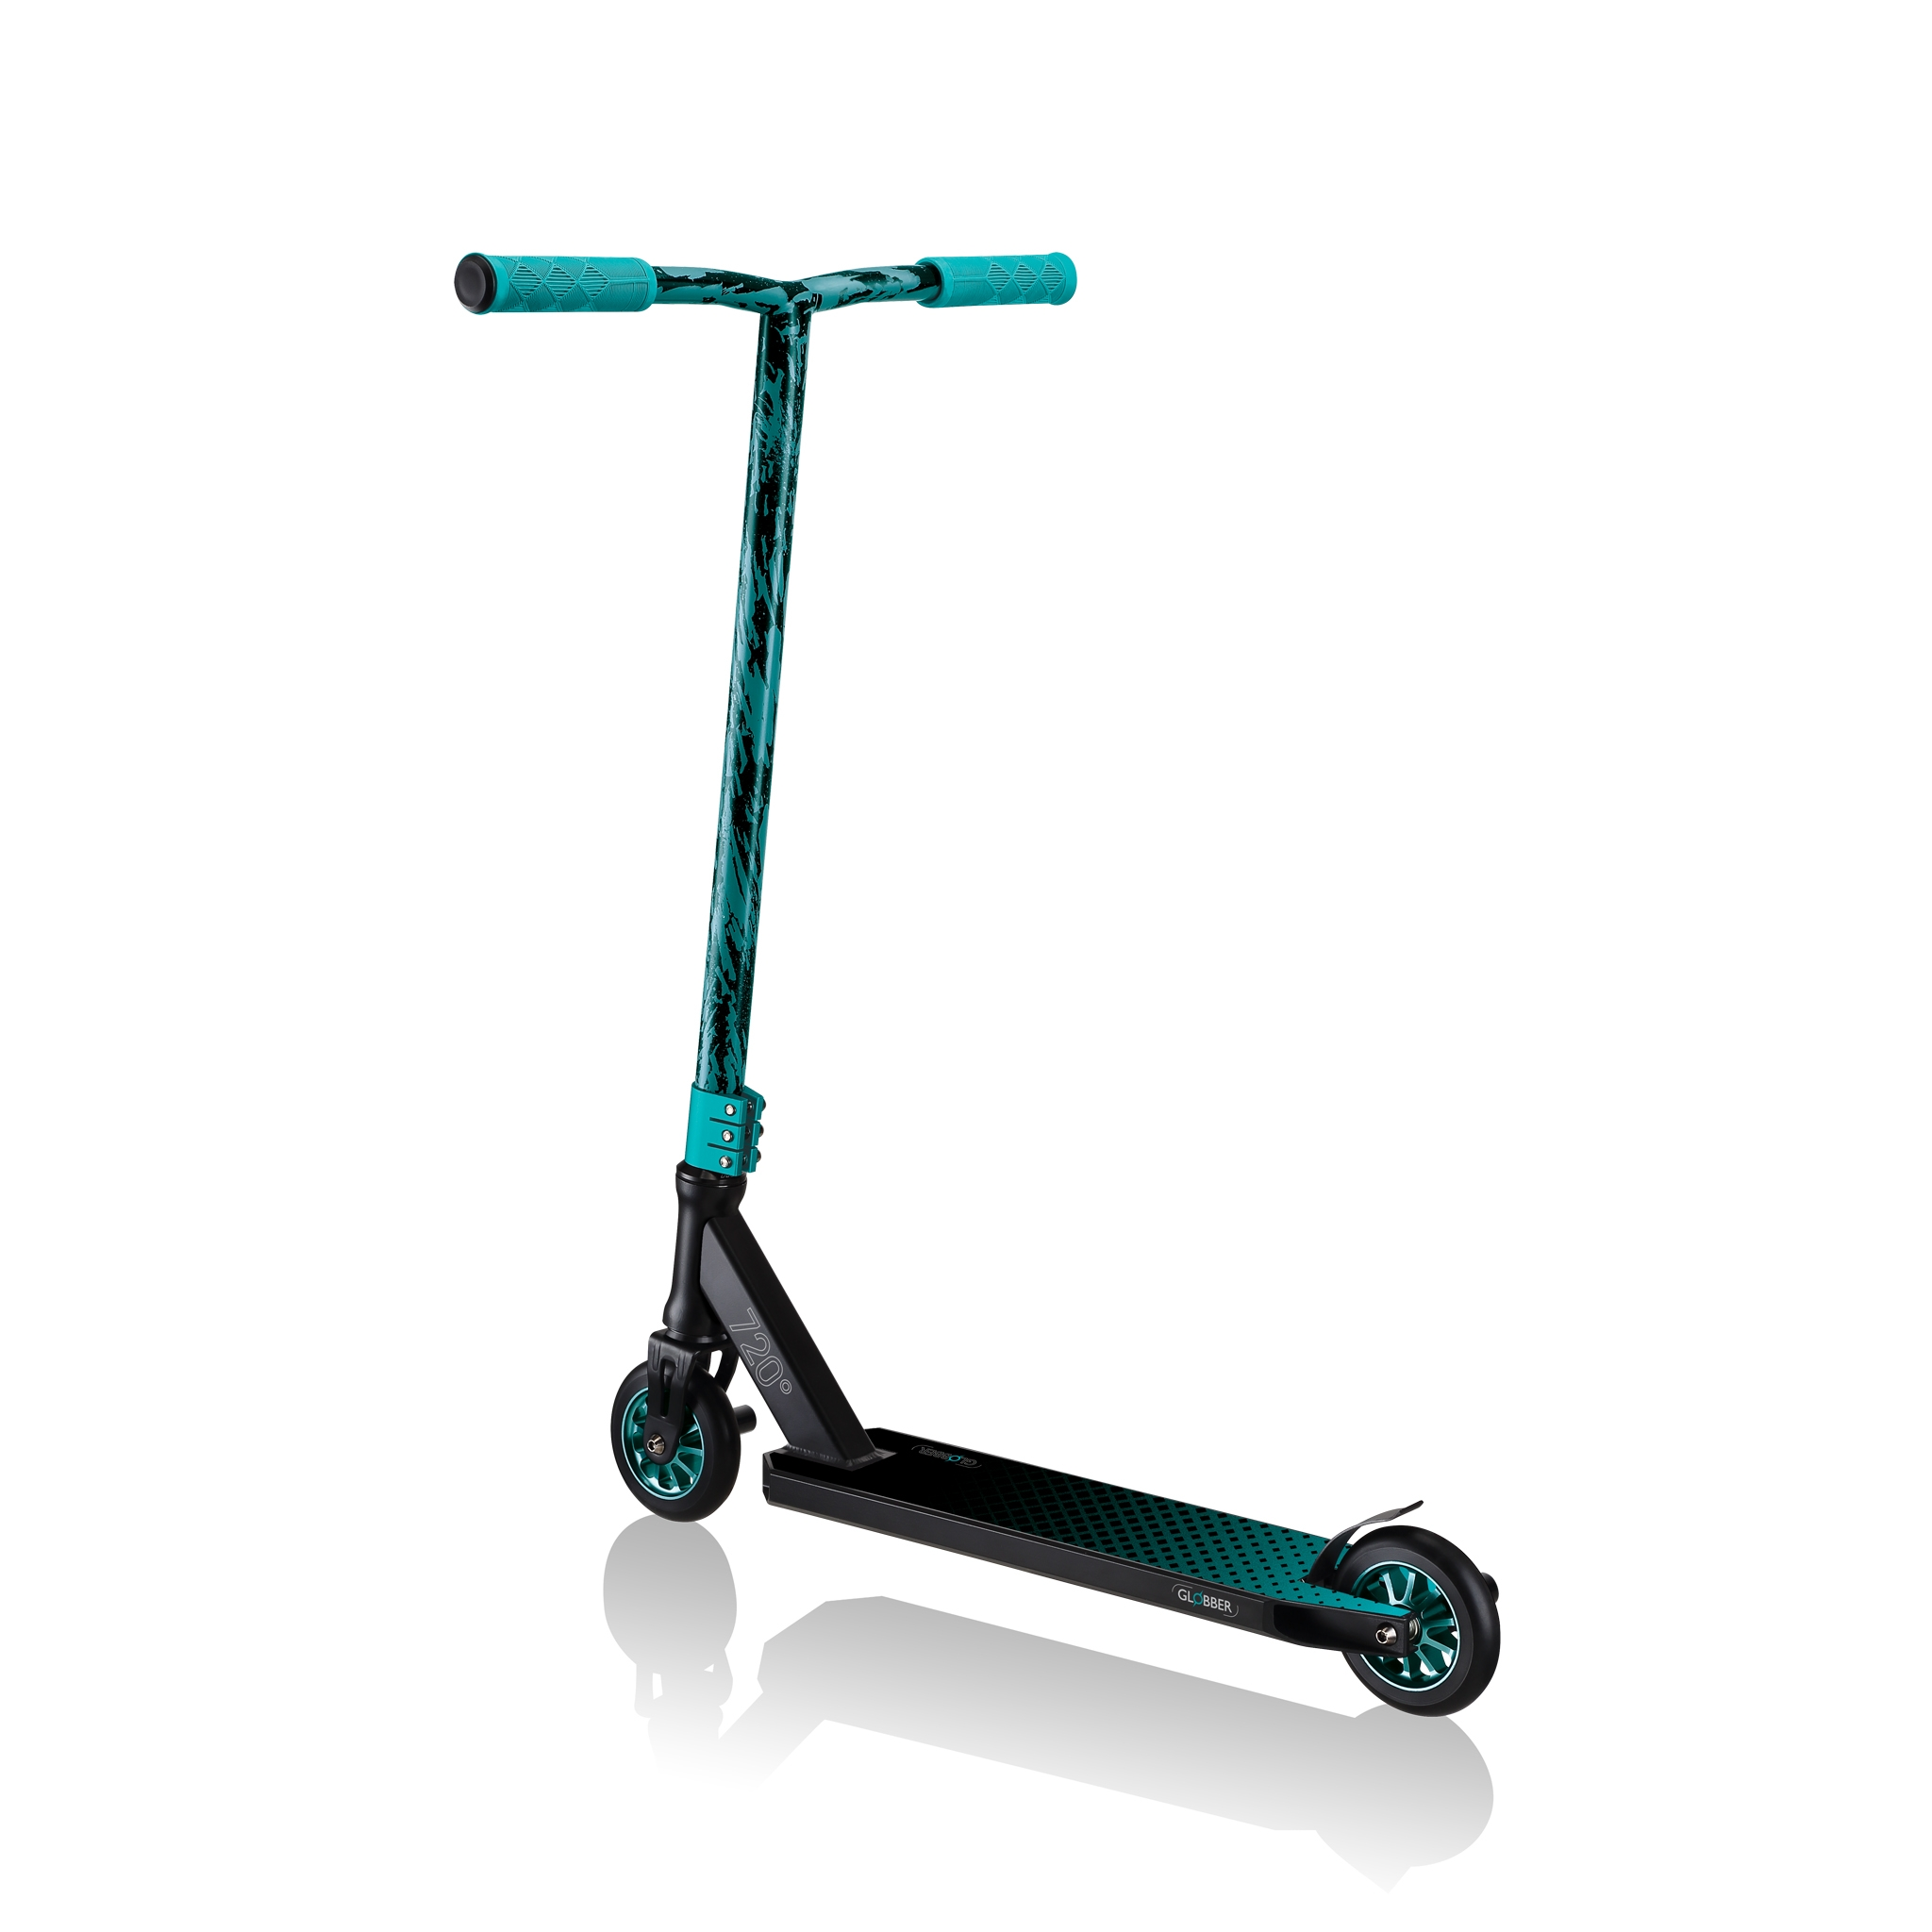 pro-trick-scooter-for-freestyling-Globber-GS720 3